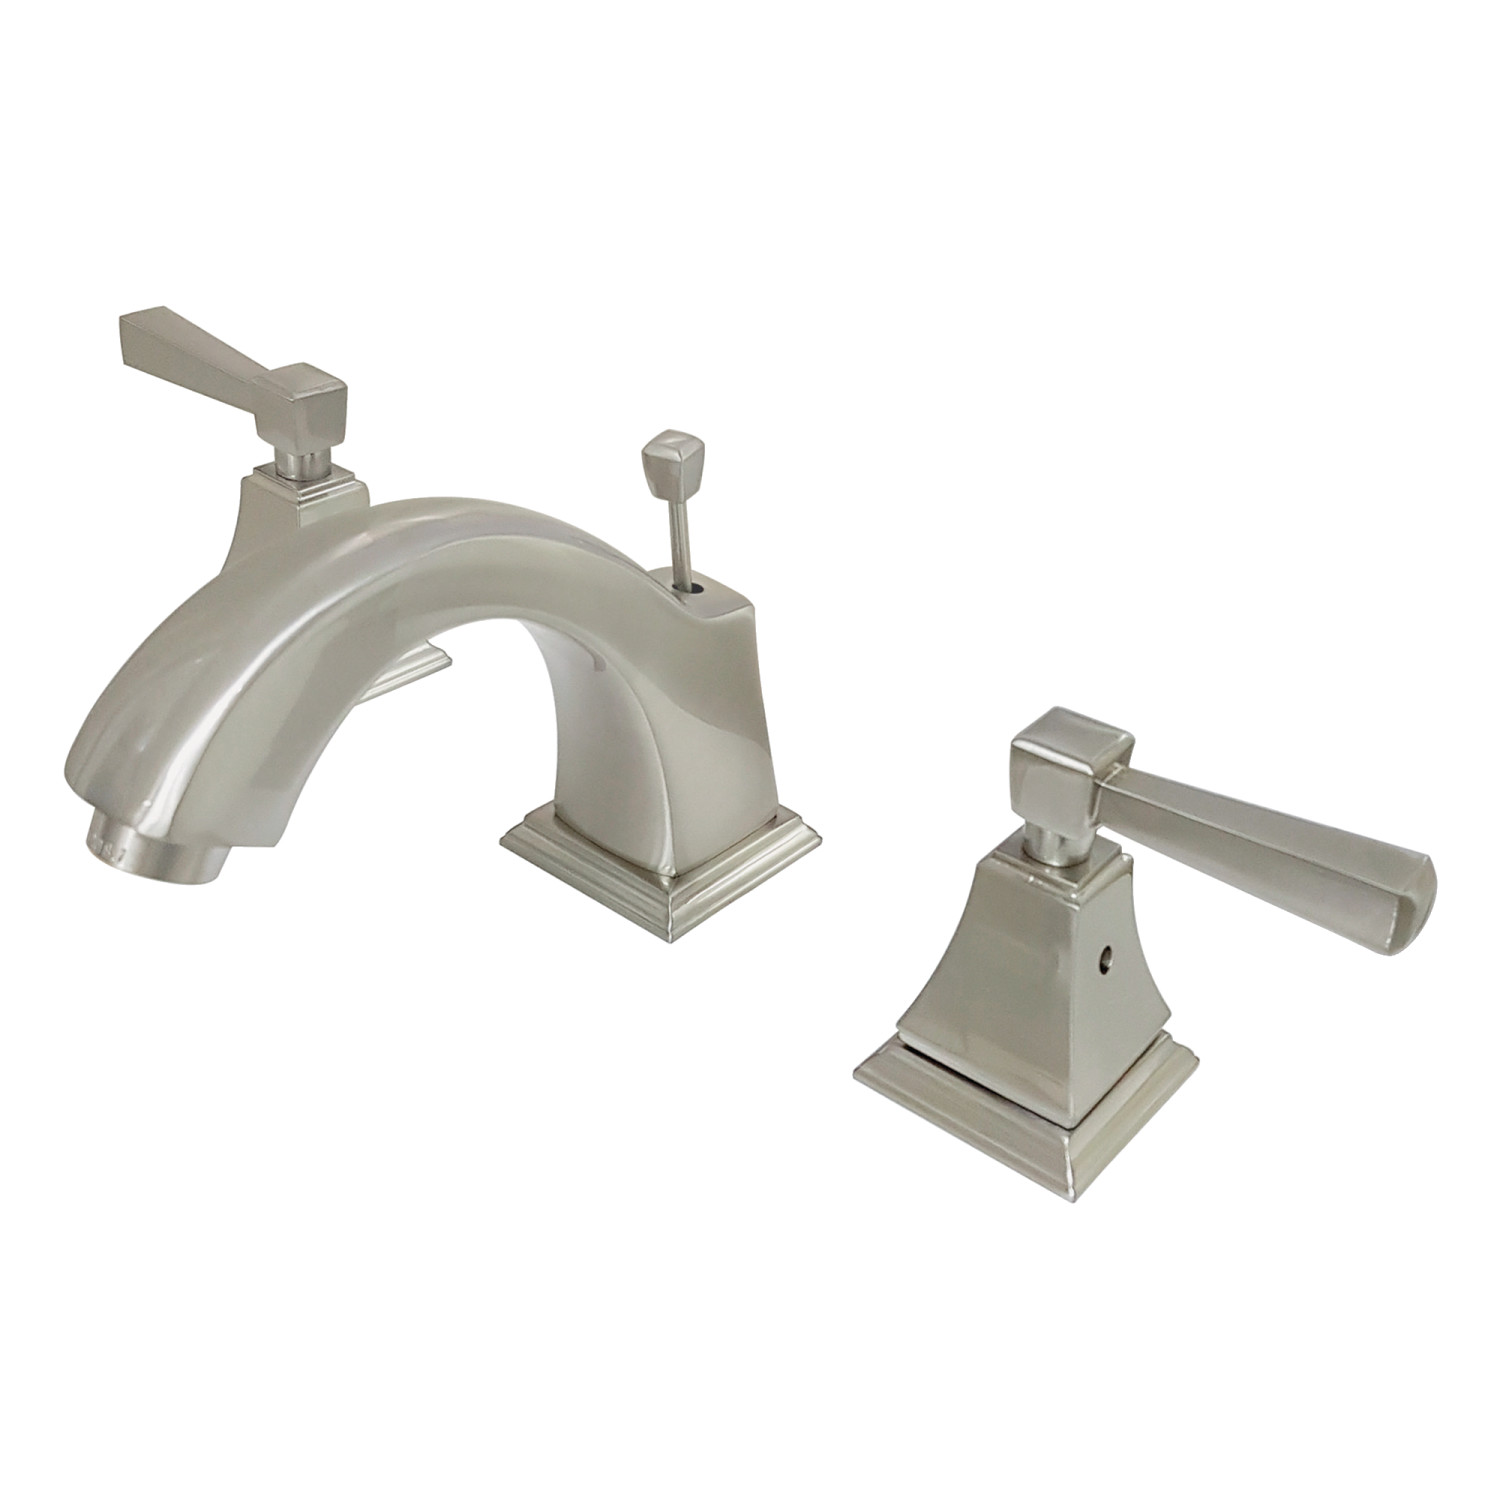 Contemporary Two-Handle 3-Hole Deck Mounted Widespread Bathroom Faucet with Plastic Pop-Up in Oil Rubbed Bronze